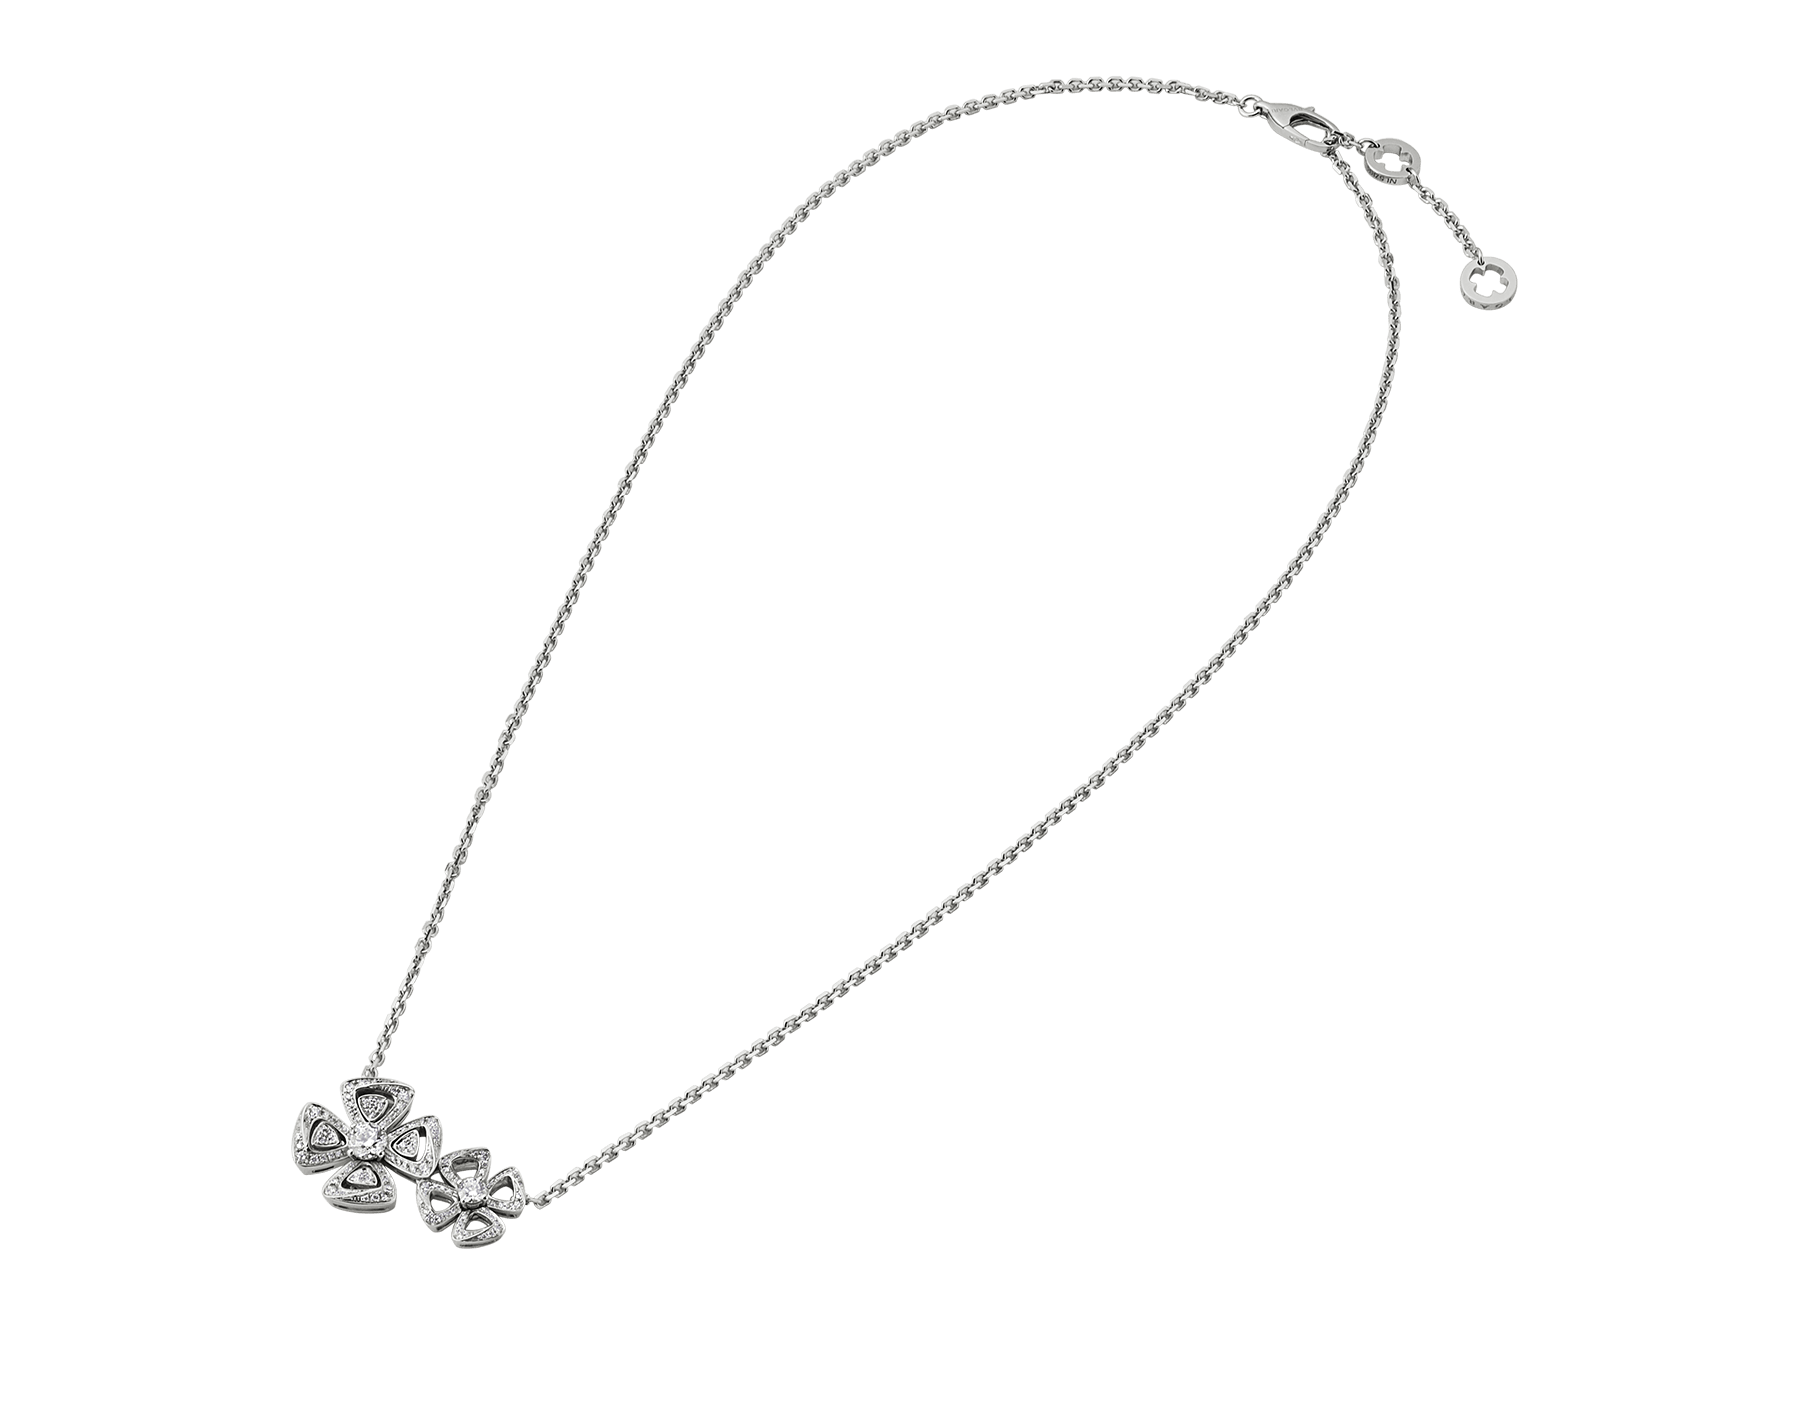 Fiorever two-flowers 18 kt white gold necklace set with two central diamonds (0.30 ct and 0.10 ct) and pavé diamonds (0.31 ct) 354498 image 2